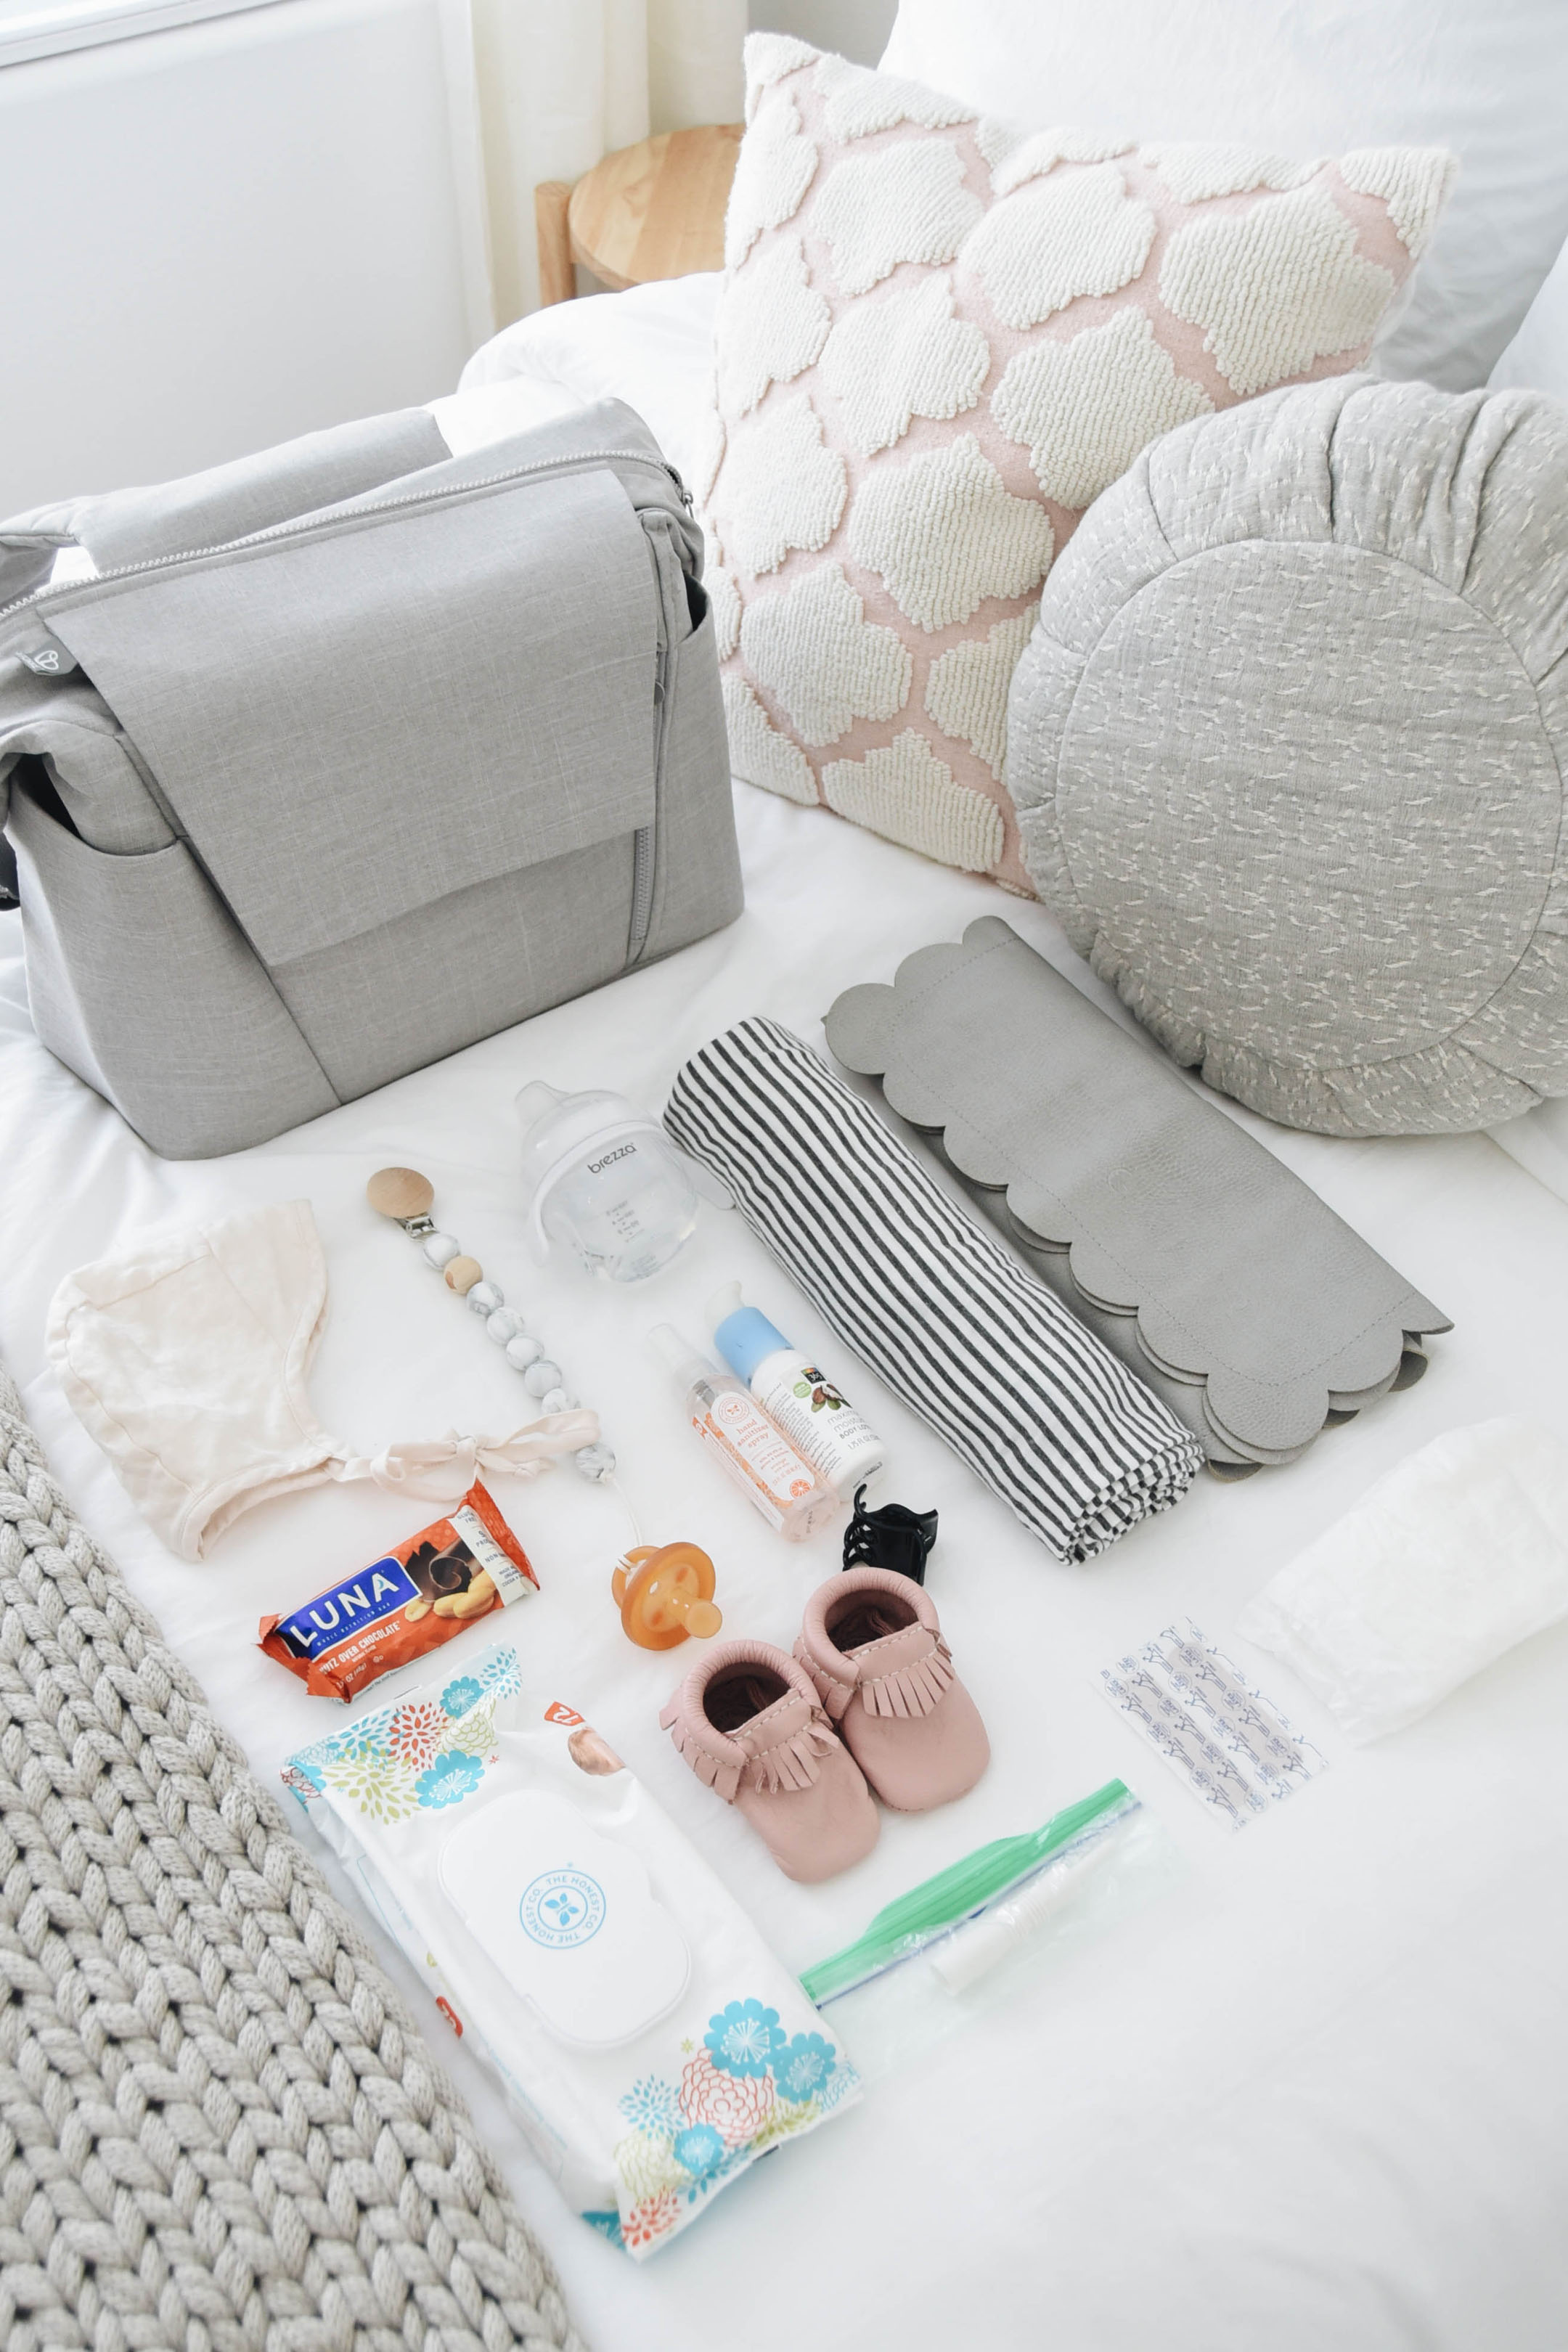 What to put in diaper bag